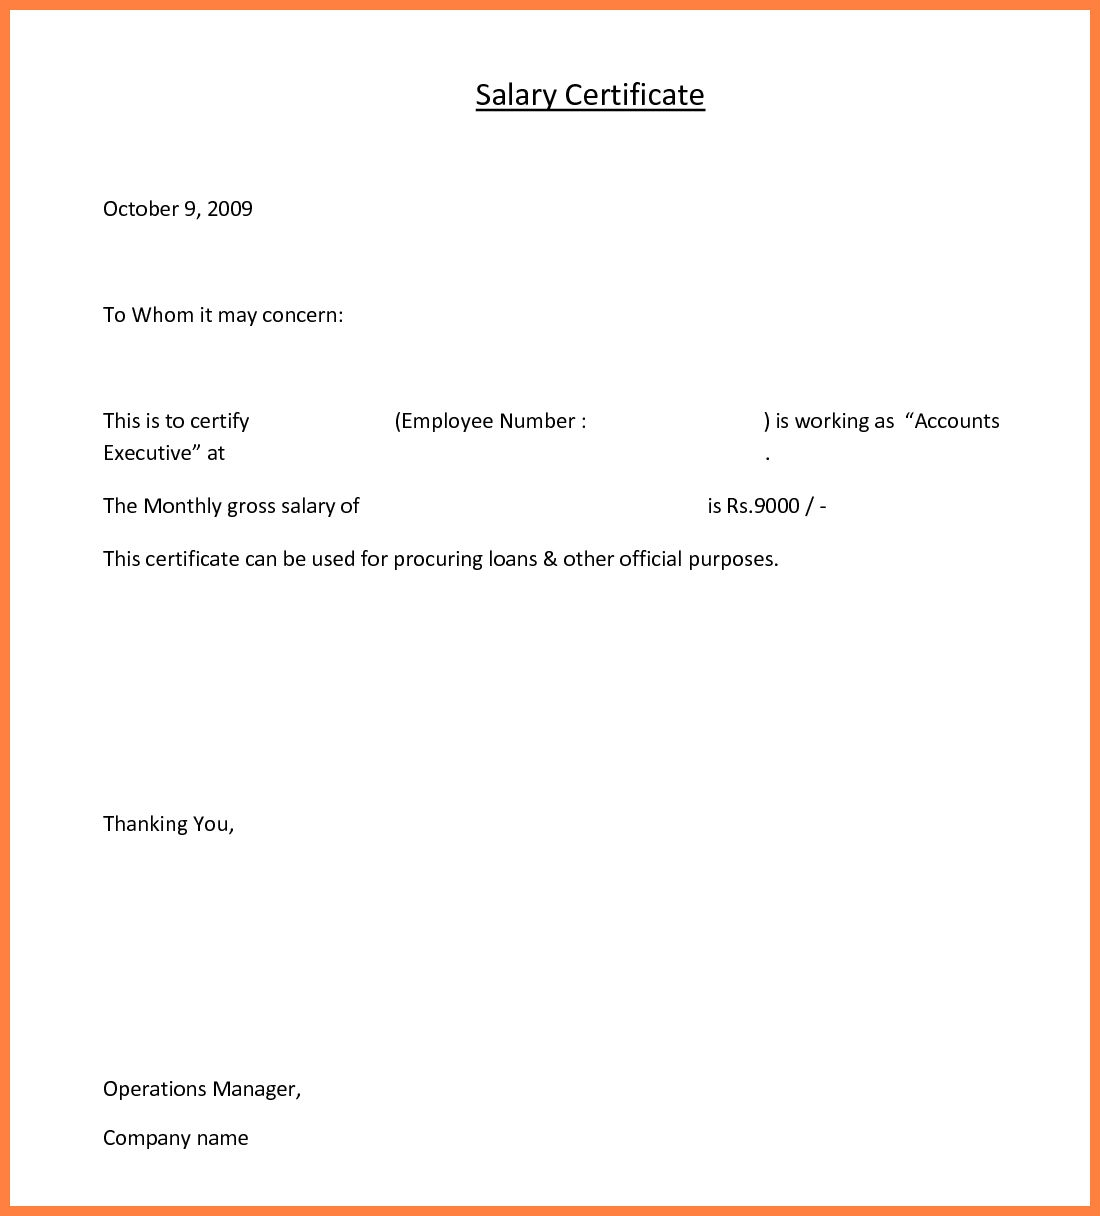 Certificate of Employment Sample with Salary